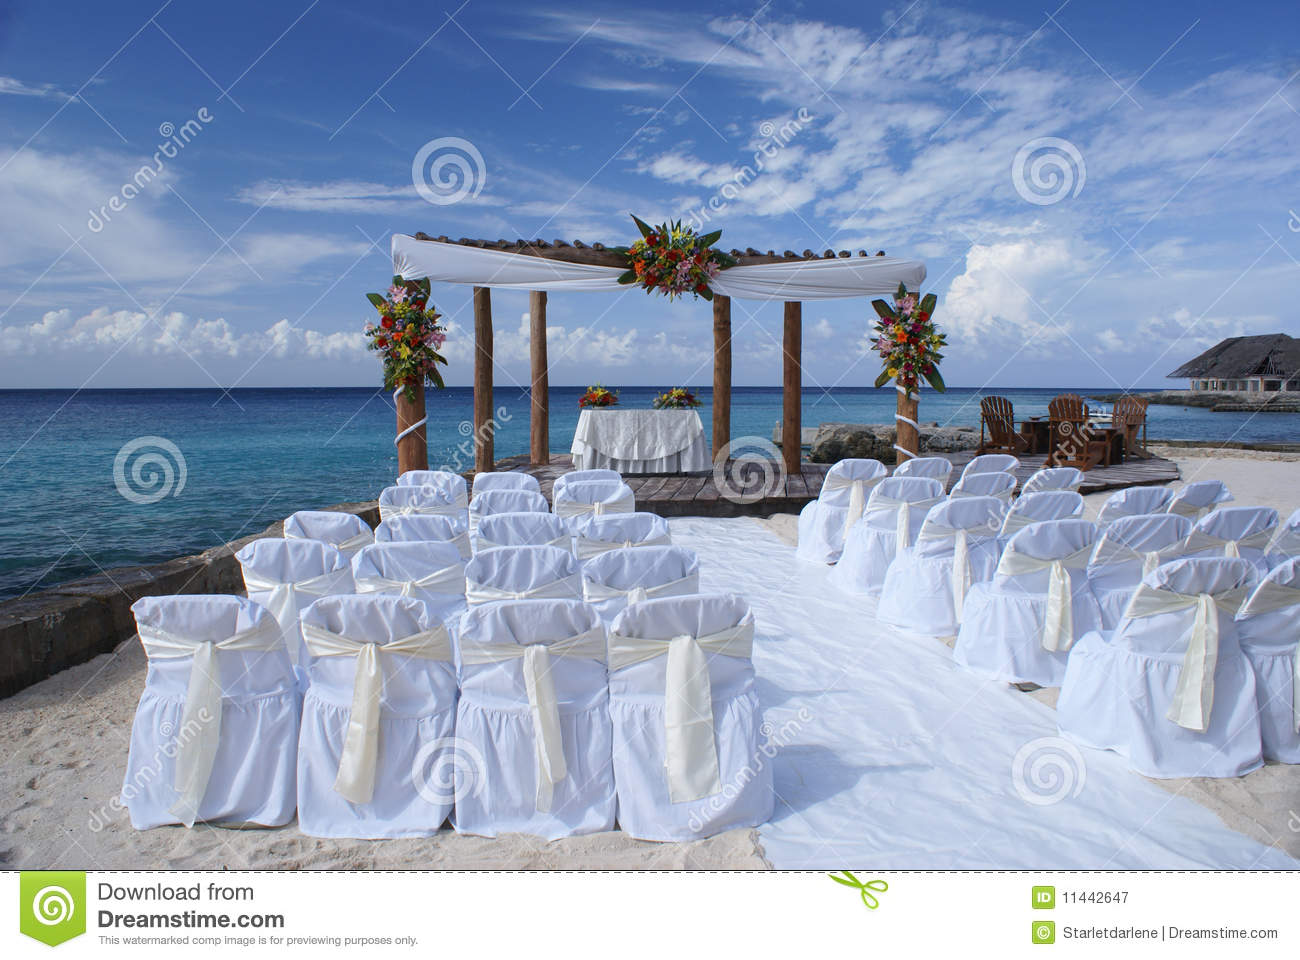 pr sidences de mariage sur la plage photographie stock libre de droits image 11442647. Black Bedroom Furniture Sets. Home Design Ideas